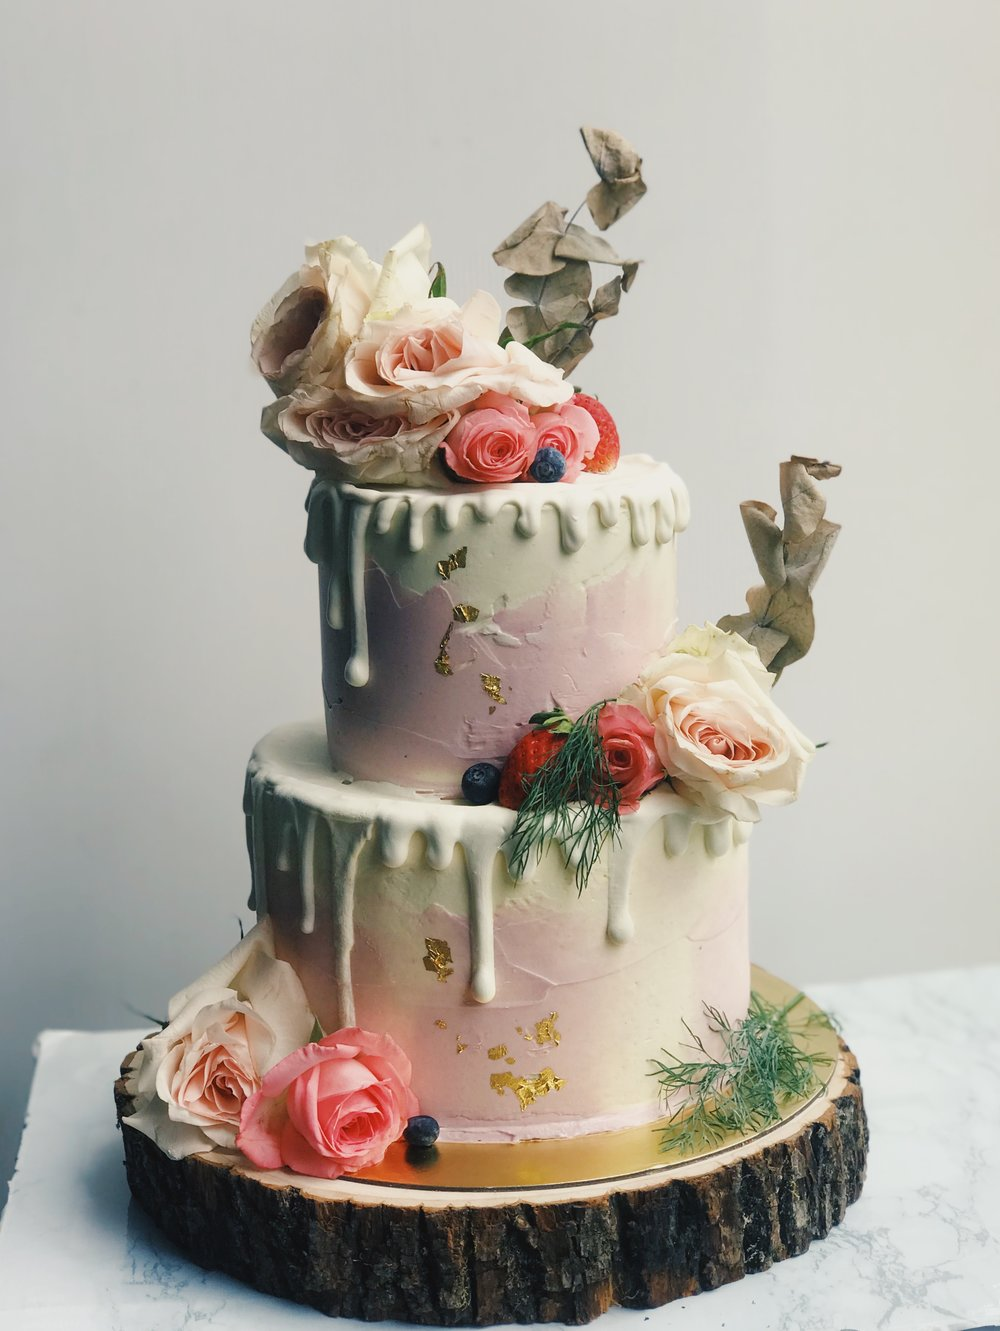 Pastel Pink White Drip Cake (With Flowers)